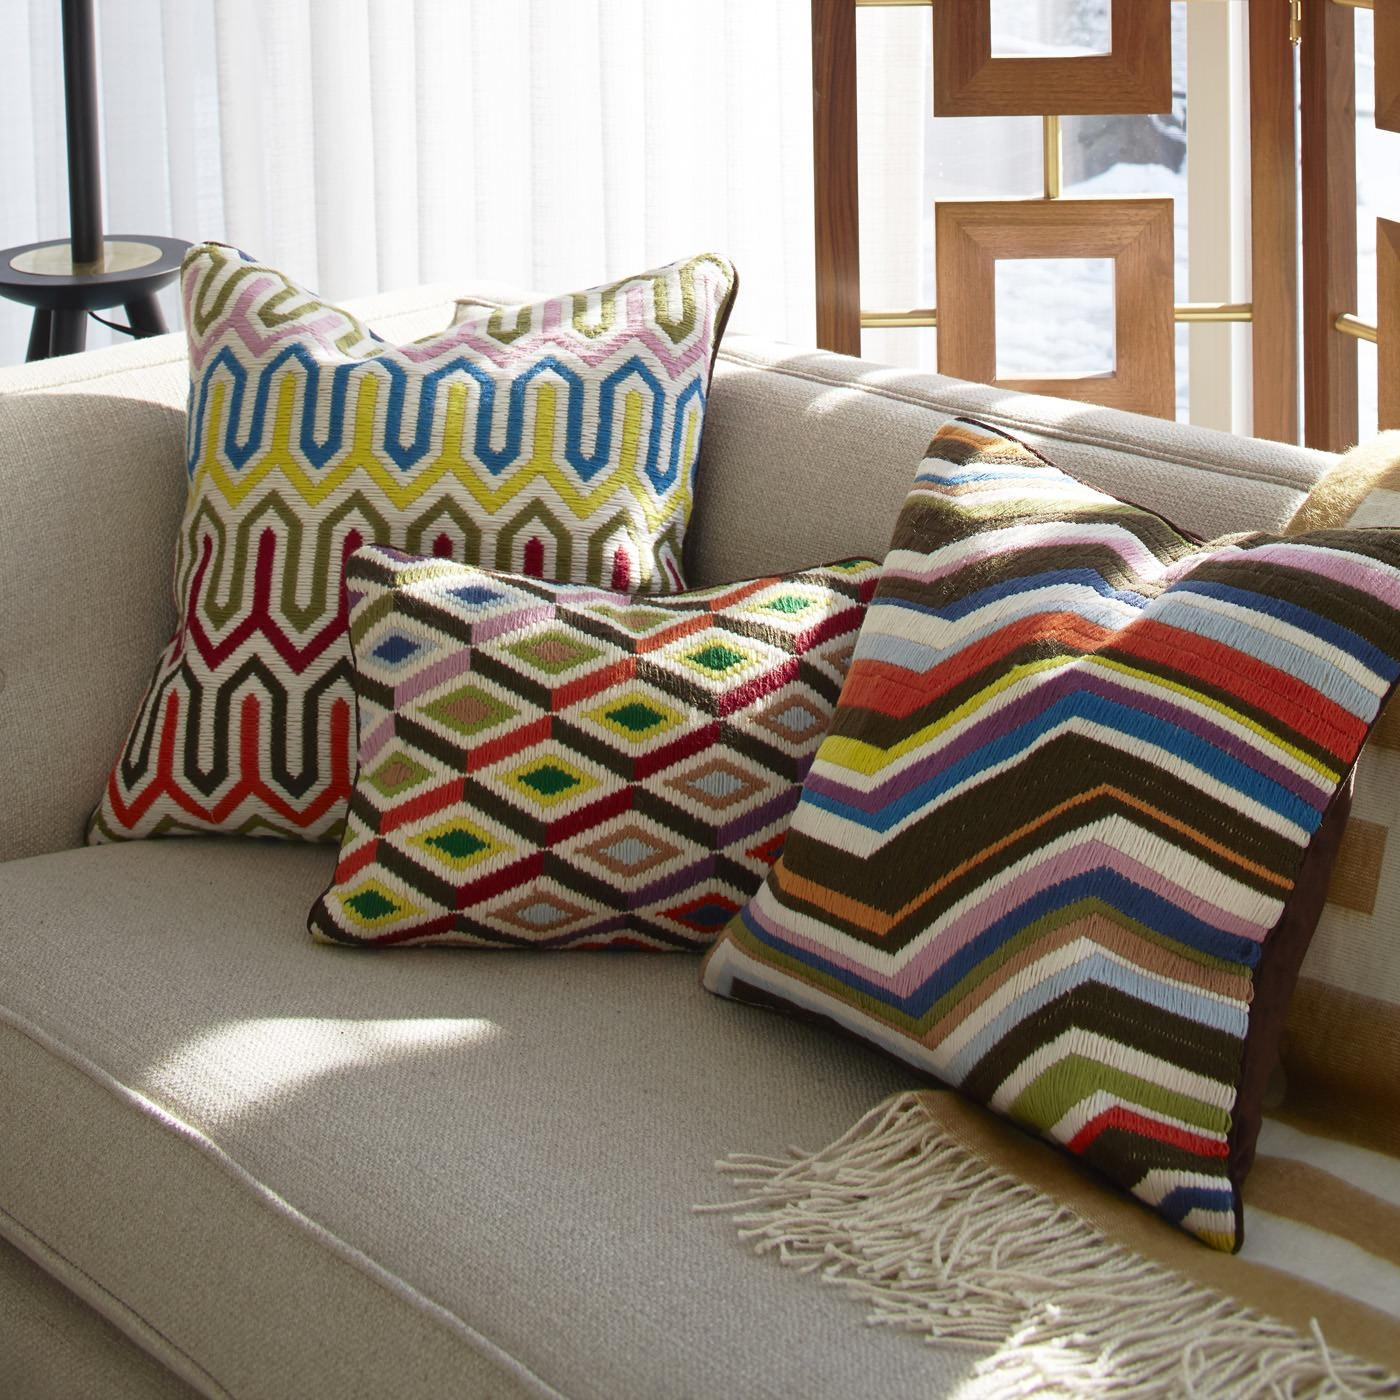 Sofas Center : Sofa Throw Pillows Wonderful Pictures Inspirations With Regard To Oversized Sofa Pillows (Image 18 of 20)